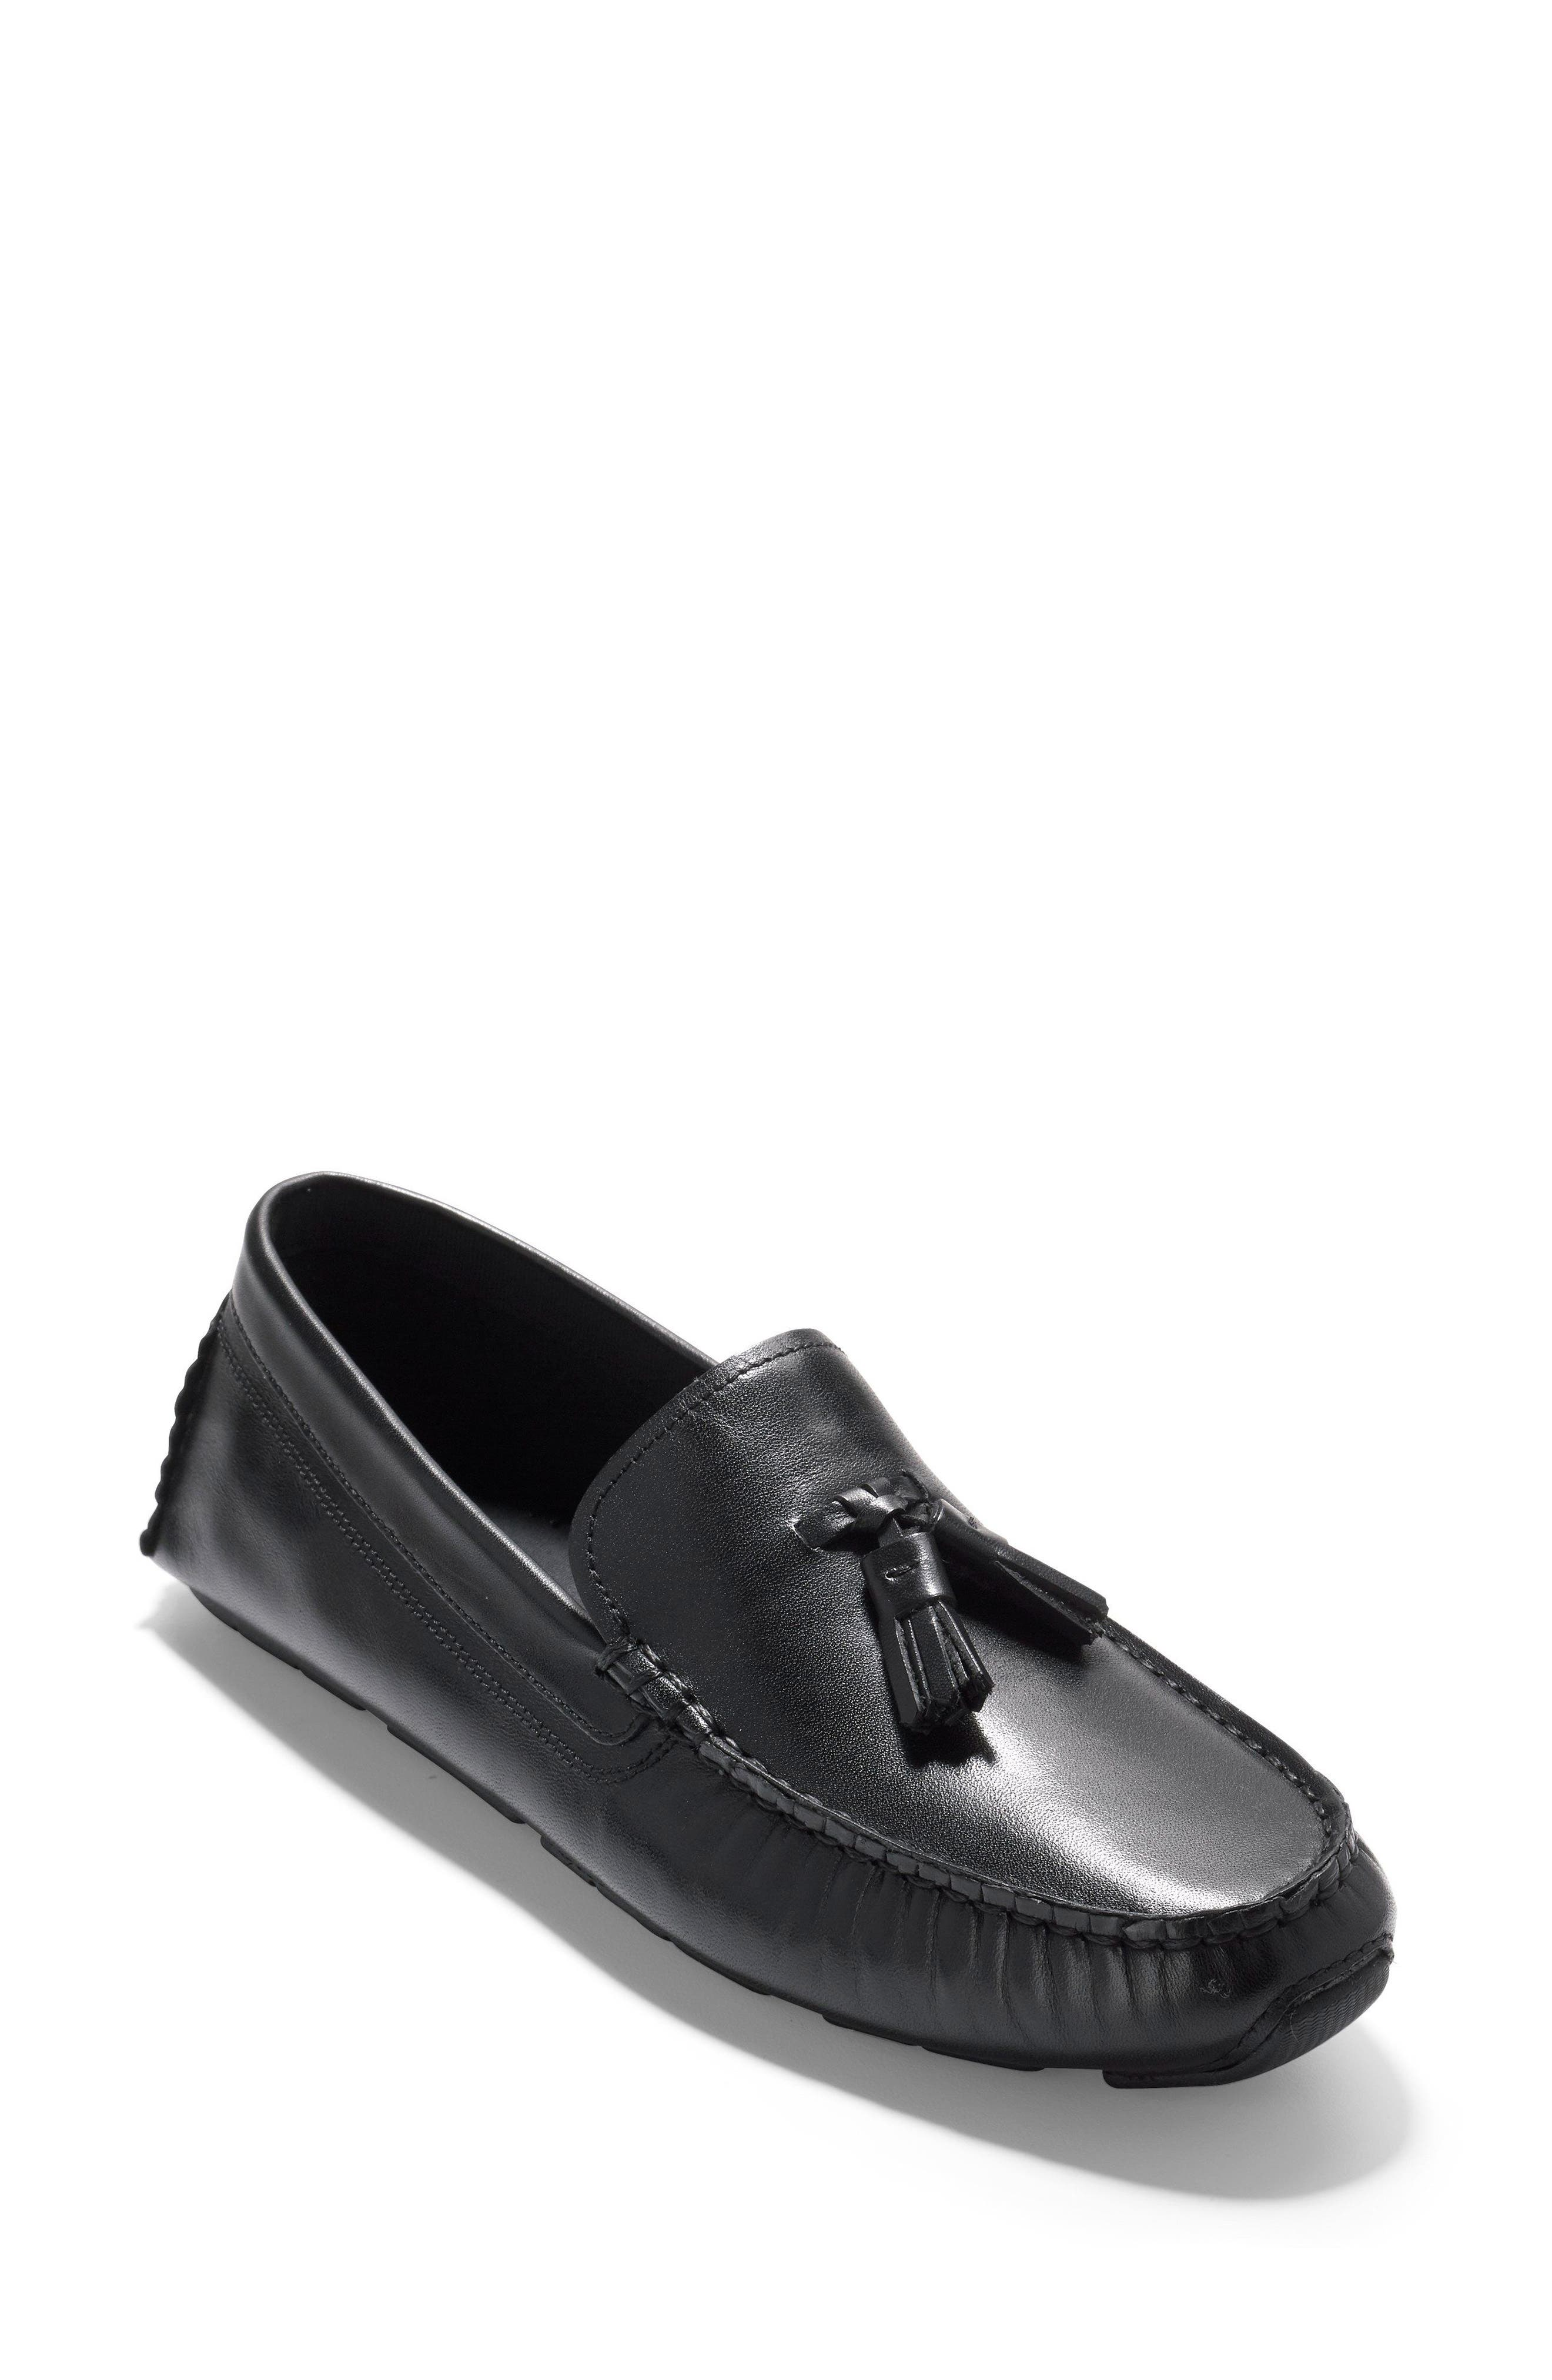 Main Image - Cole Haan Rodeo Tassel Driving Loafer (Women)